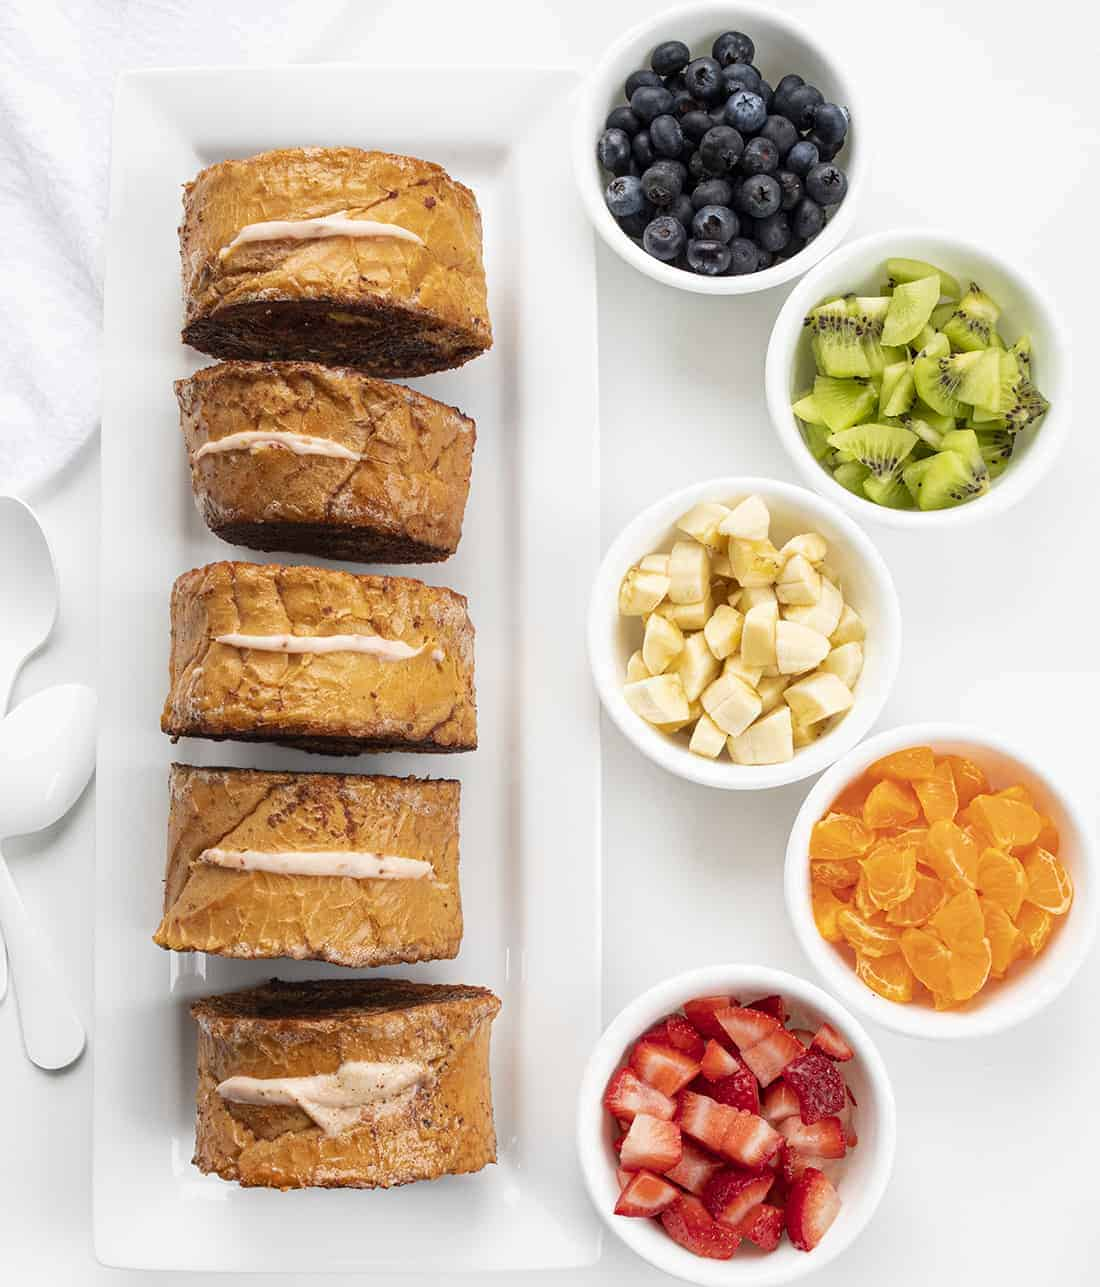 Process for Rainbow Stuffed French Toast